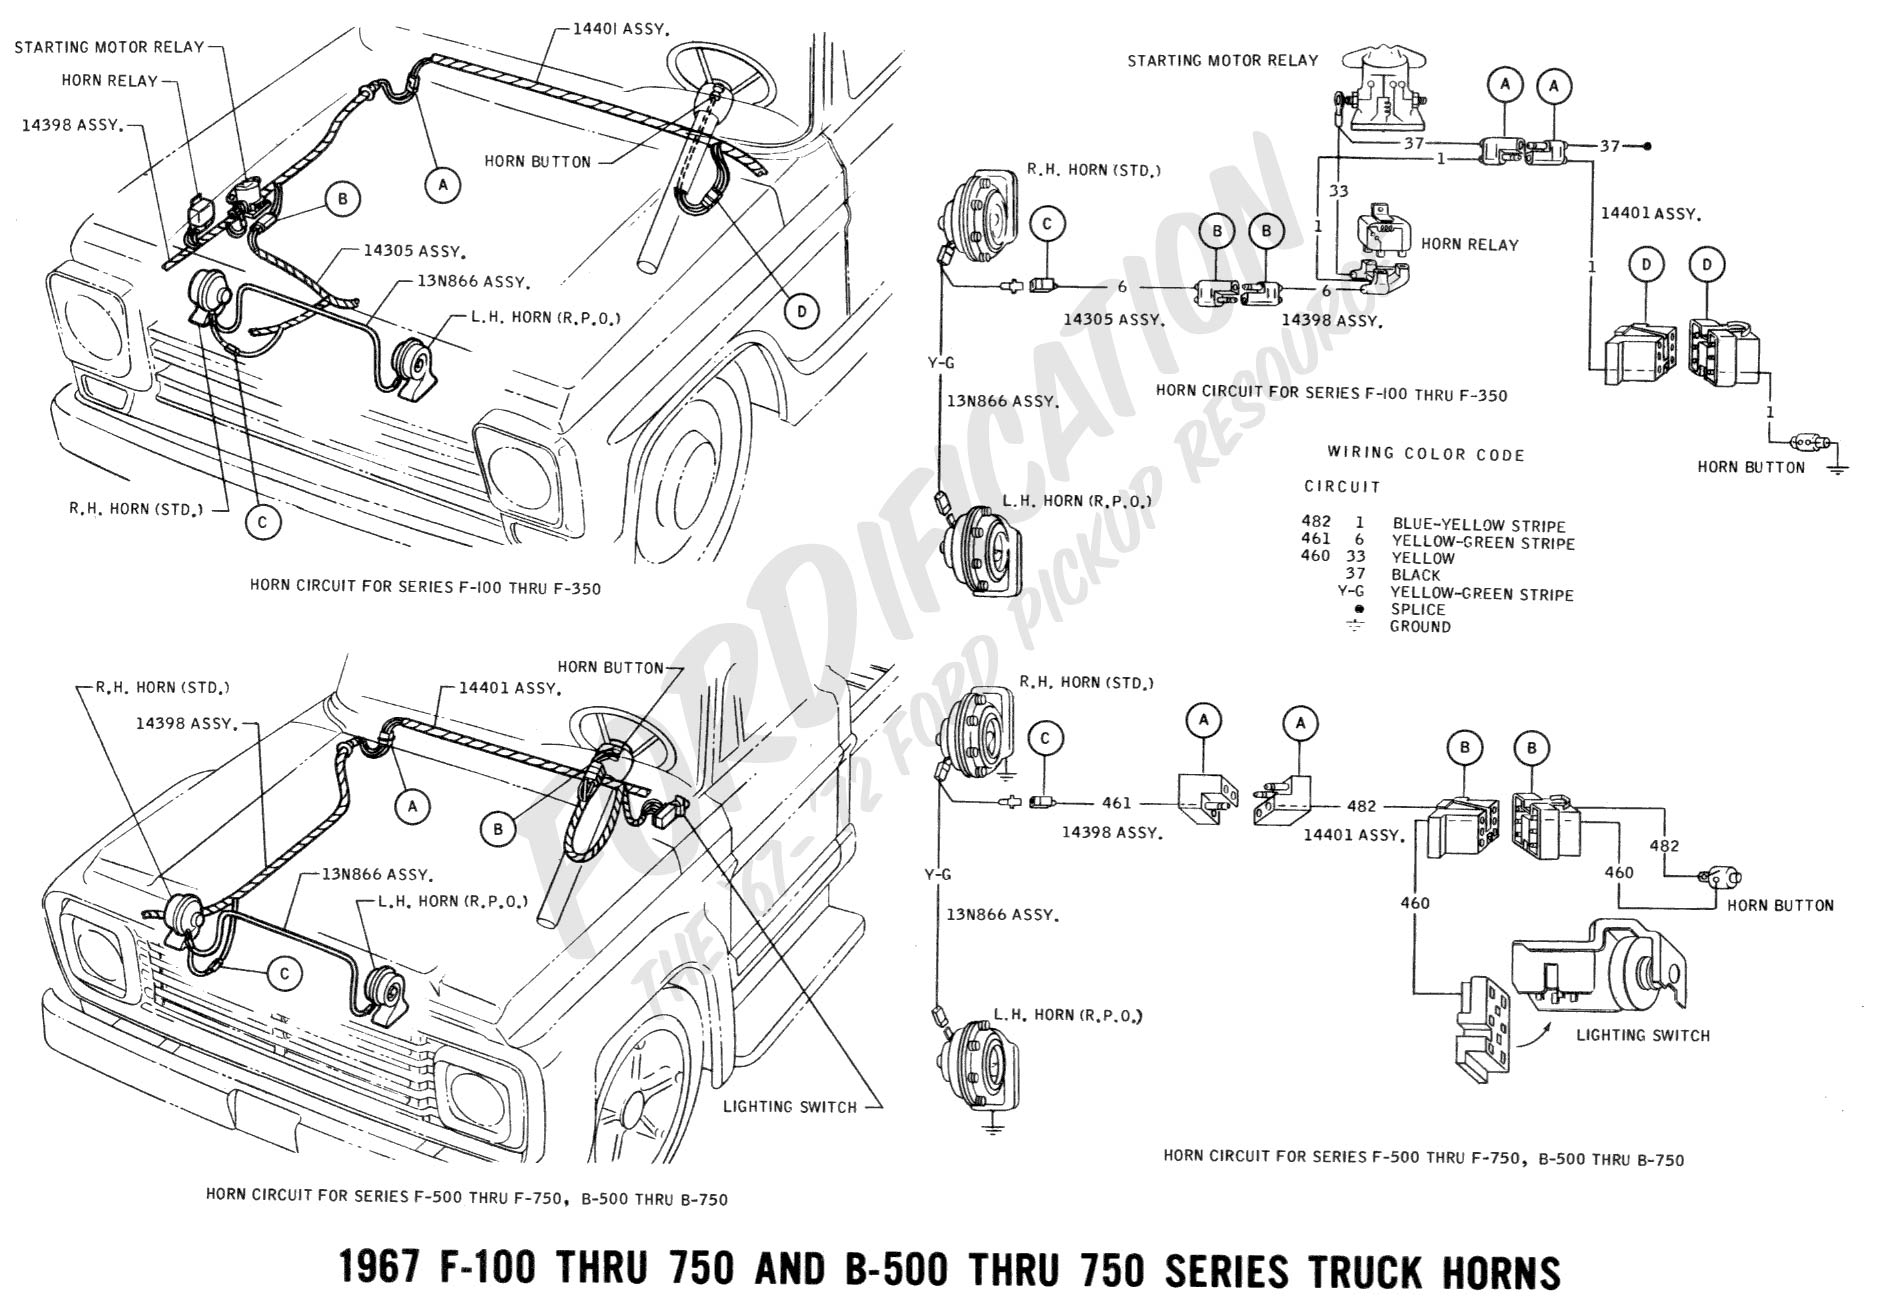 1967 Camaro Vacuum Line Diagram Also 1965 Dodge Coro Wiring 1975 Plymouth Valiant Free Download Ford Truck Technical Drawings And Schematics Section H Rh Fordification Com